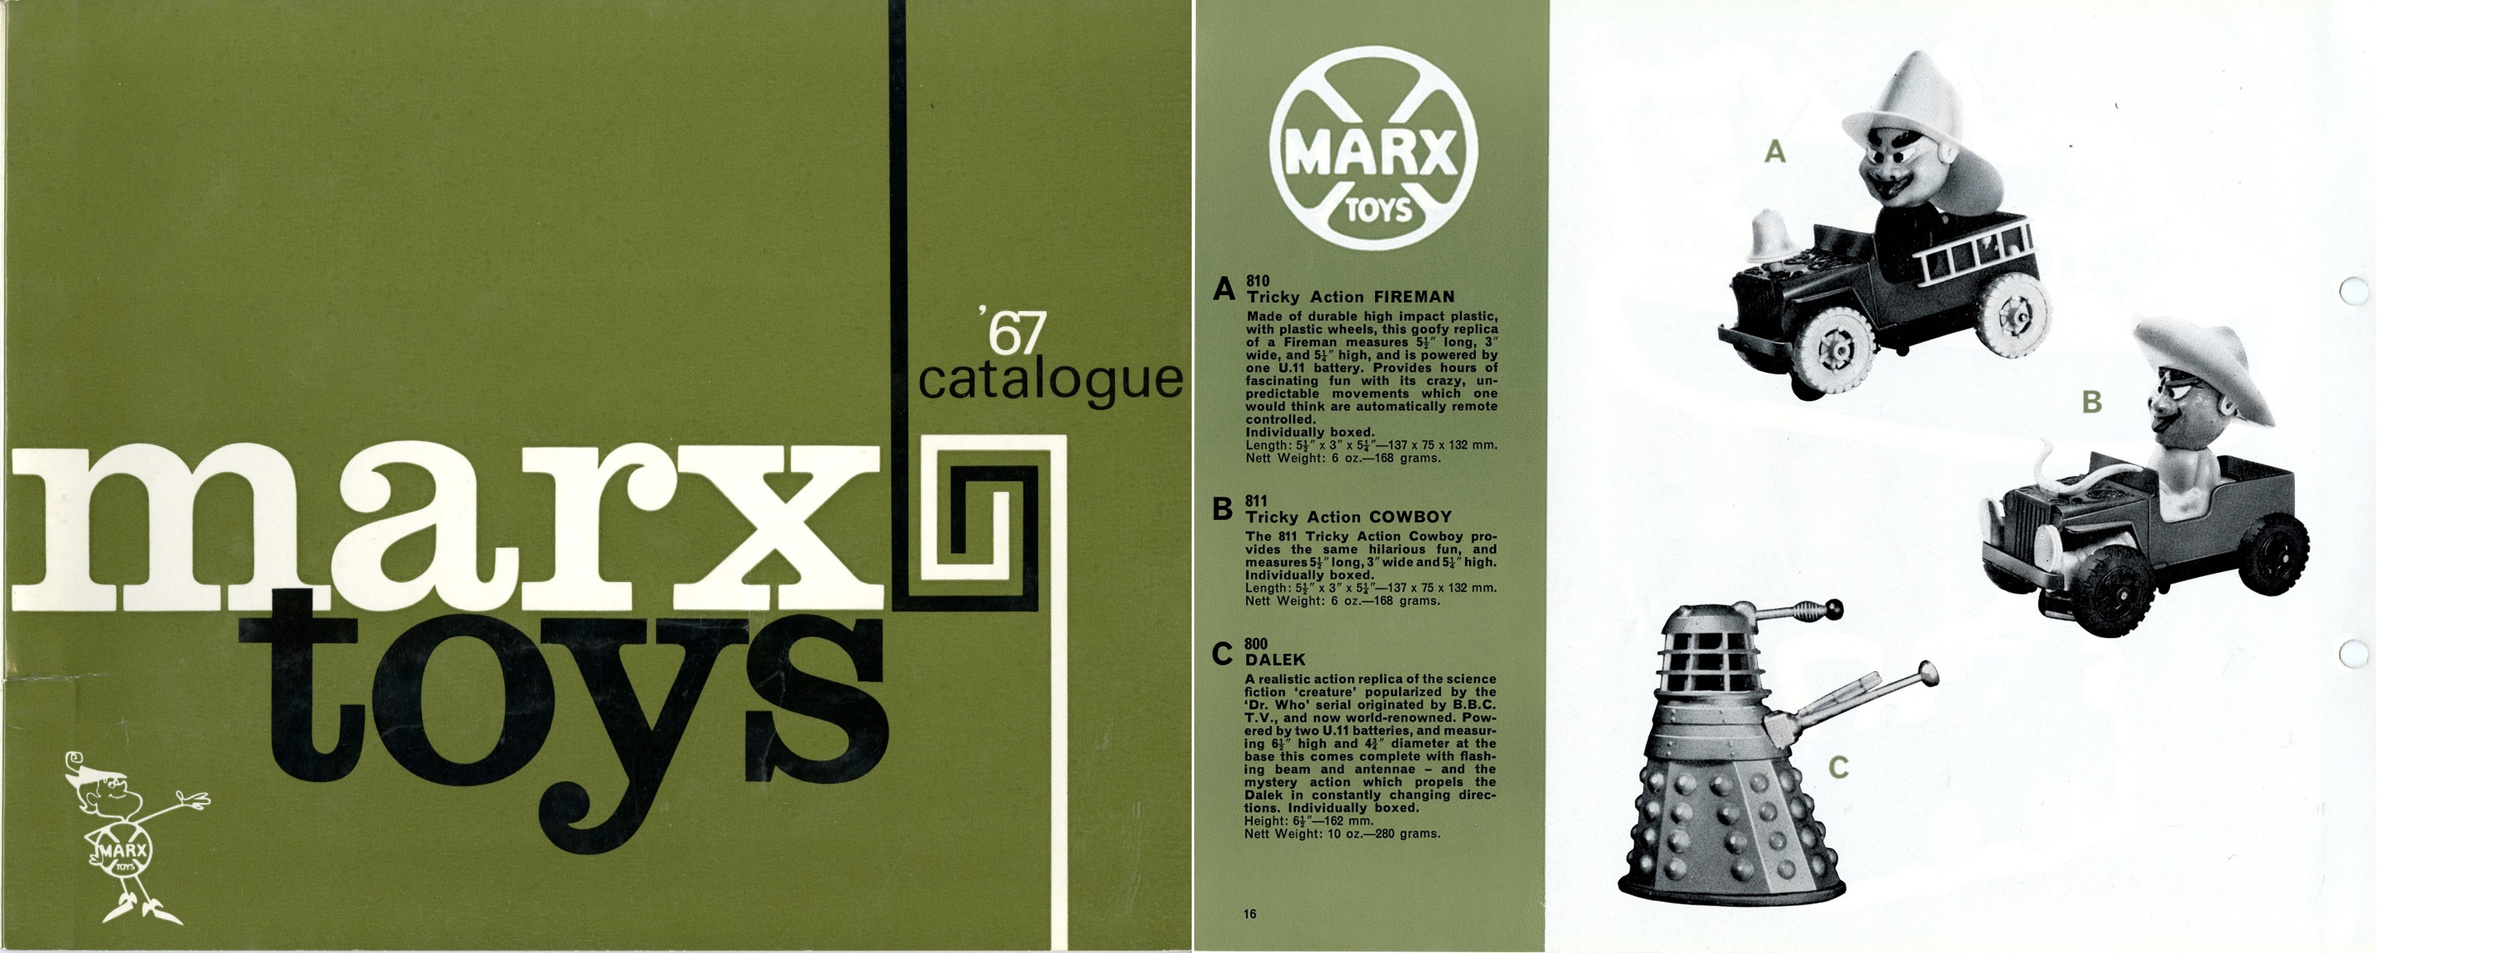 Louis Marx and Company Ltd. 1967 catalogue showing a battery-operated Dalek